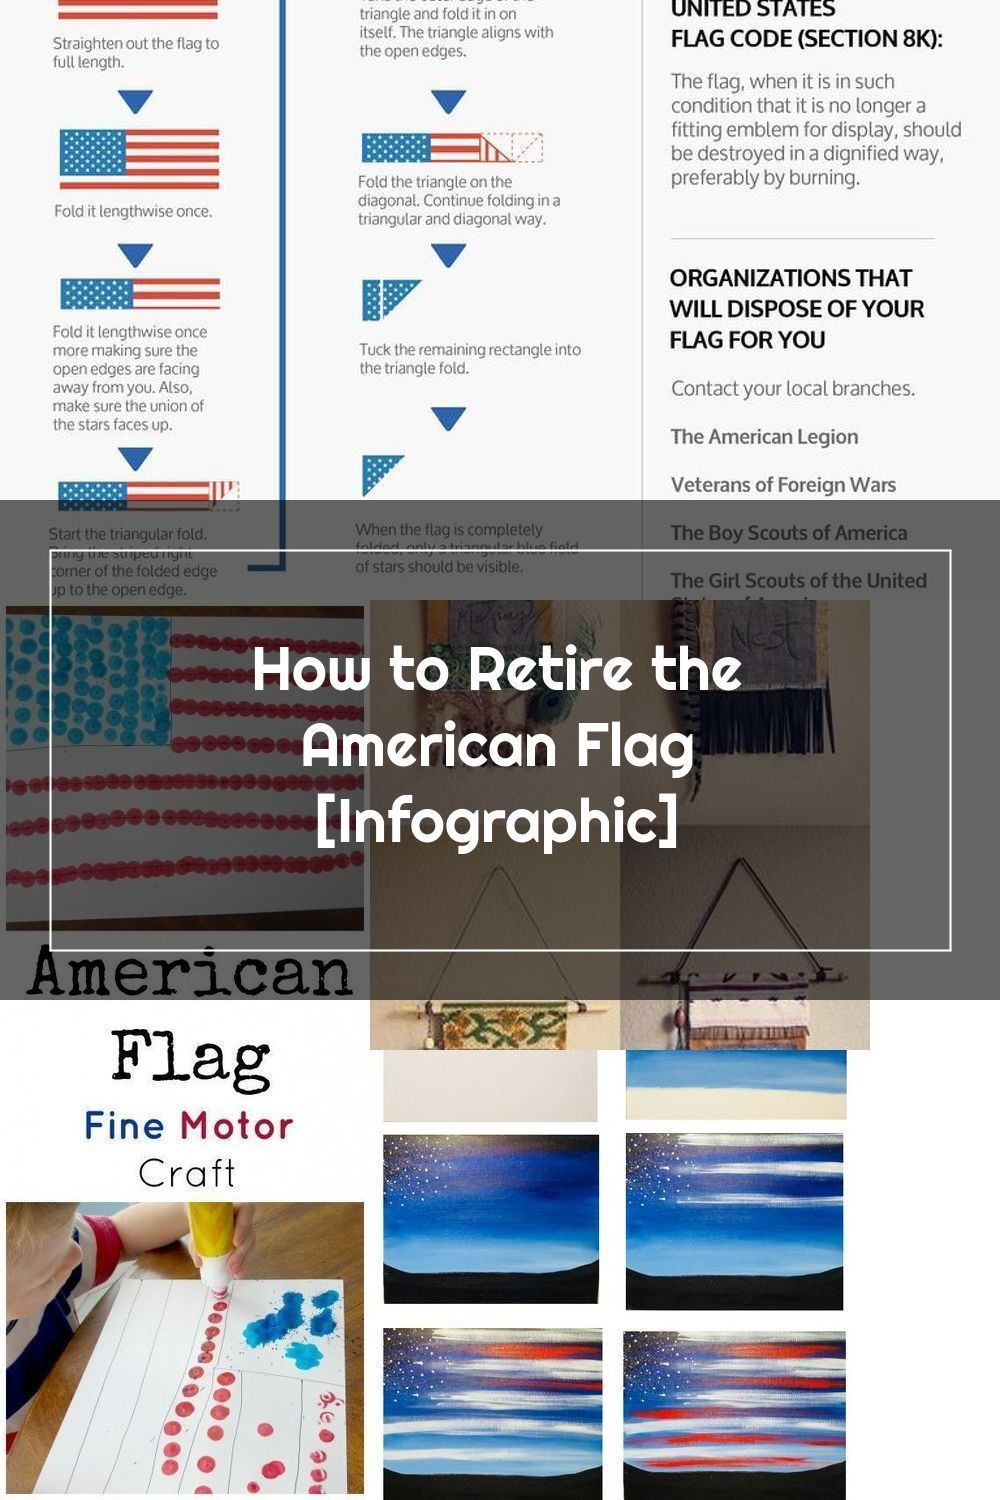 How To Retire And Properly Dispose Of Your American Flag Usflag Flag Inf In 2020 American Flag Flag Flag Code